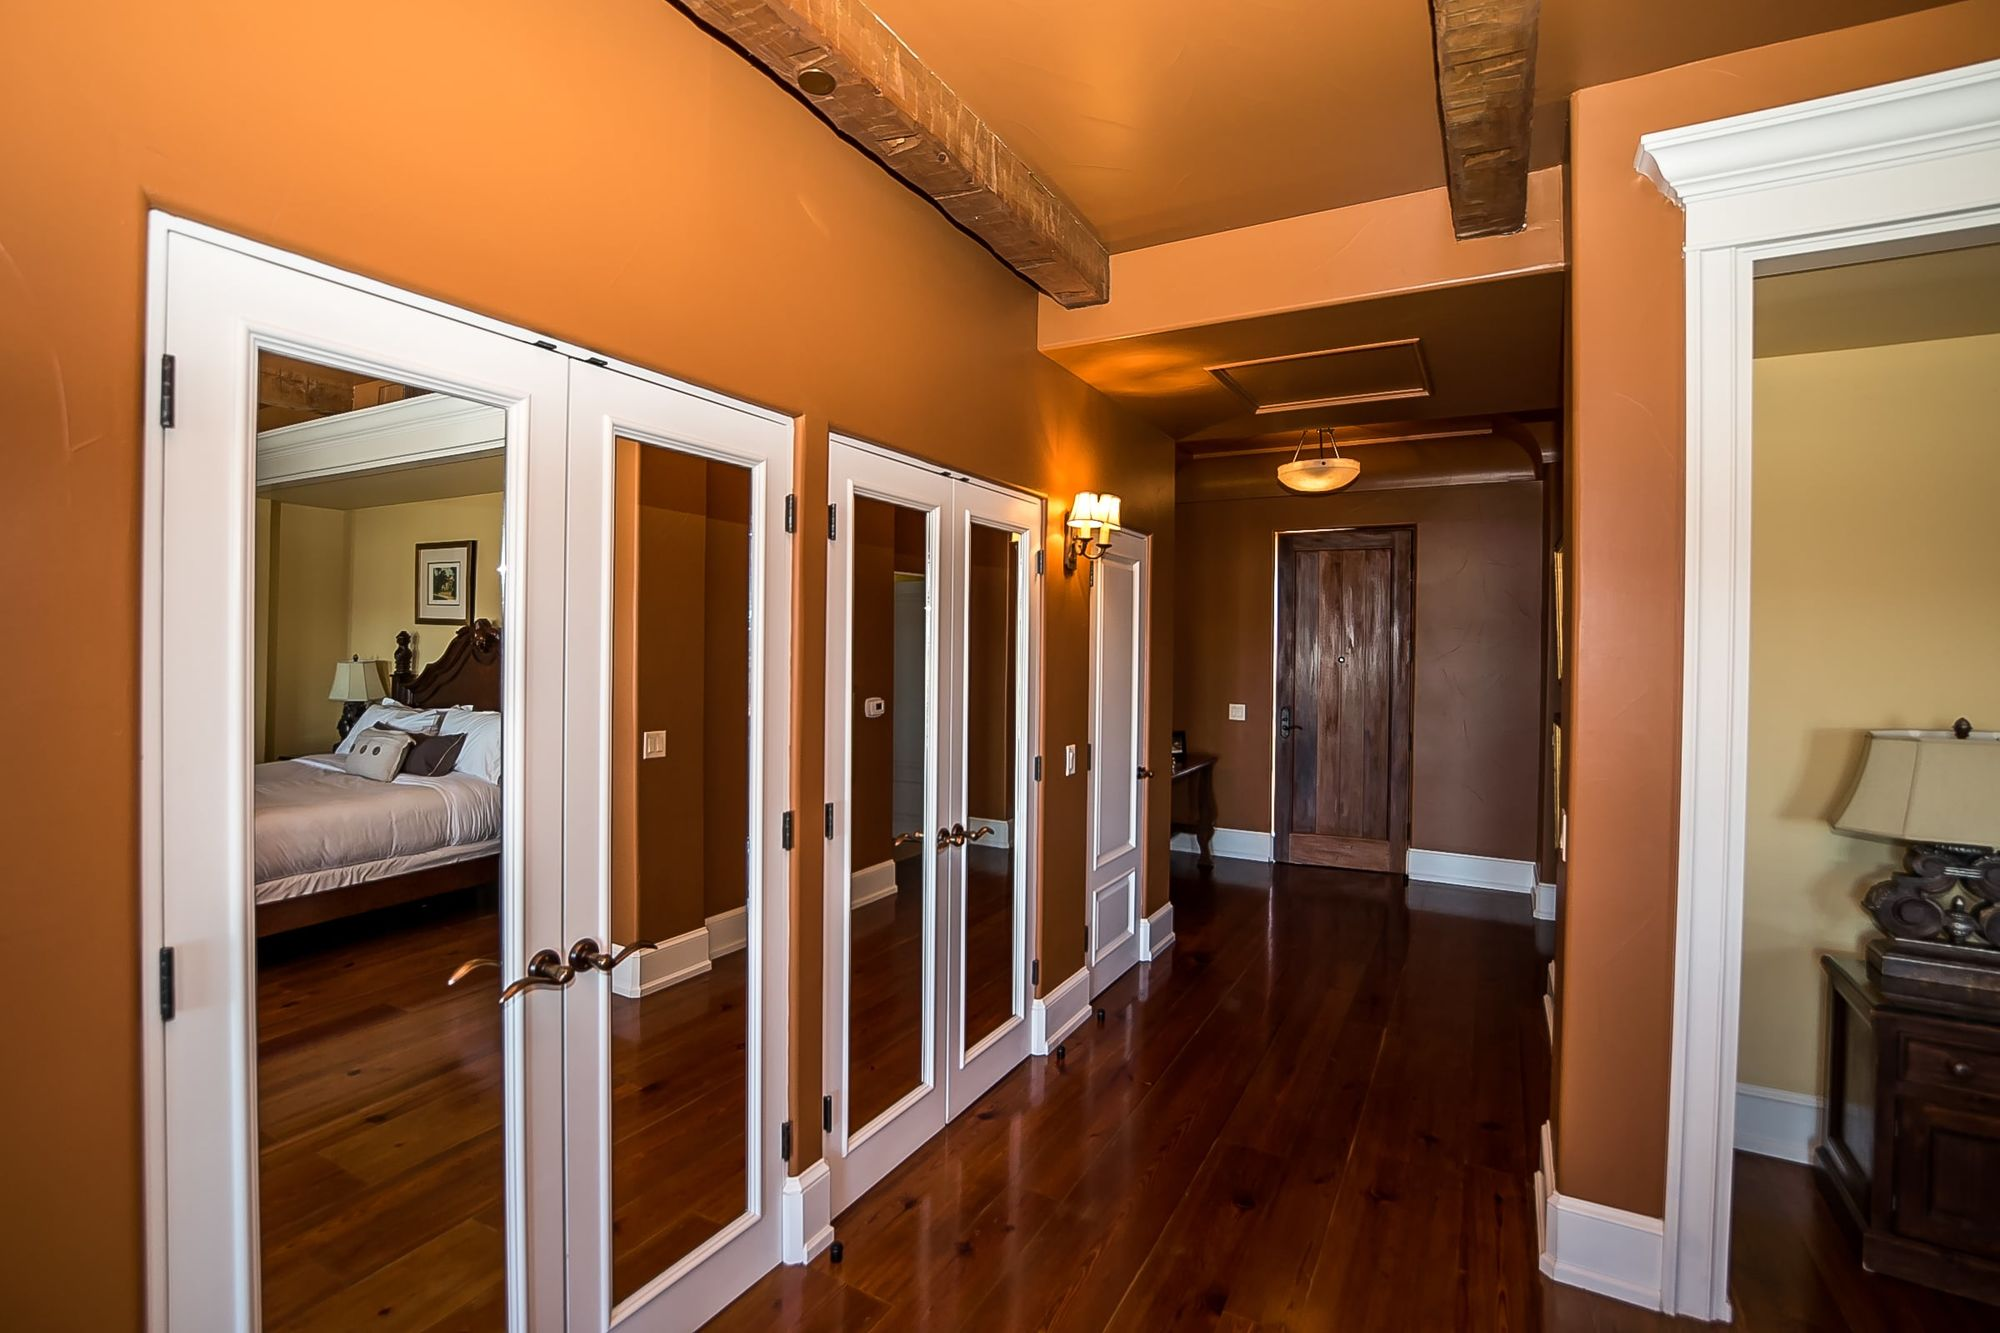 Hallway with doors with inlaid mirrors